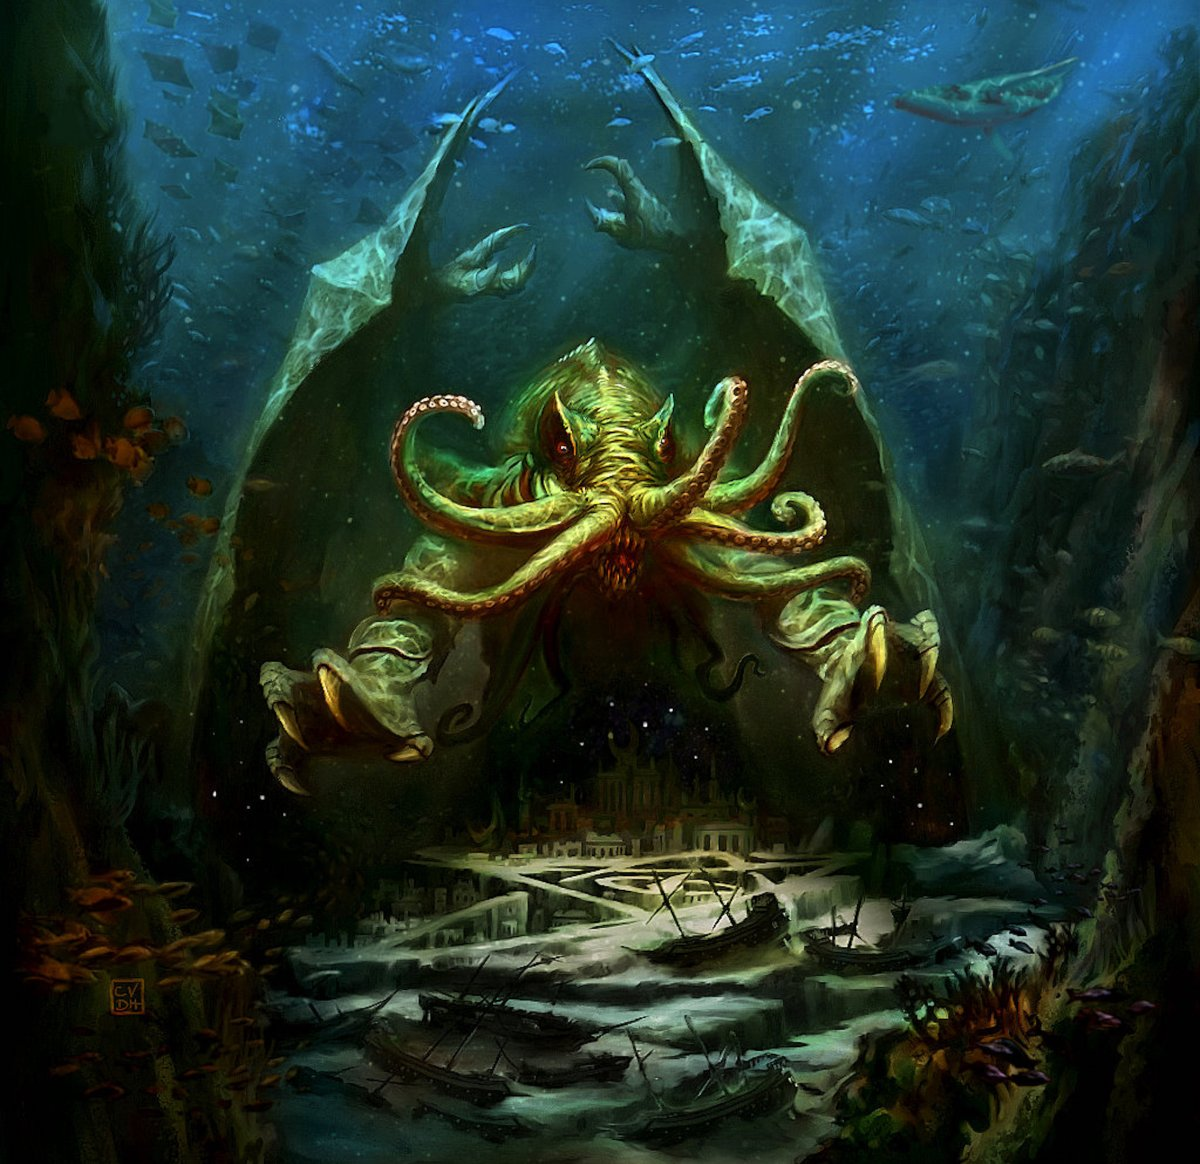 A Beginner's Guide to Lovecraft: 6 Stories to Start You Off